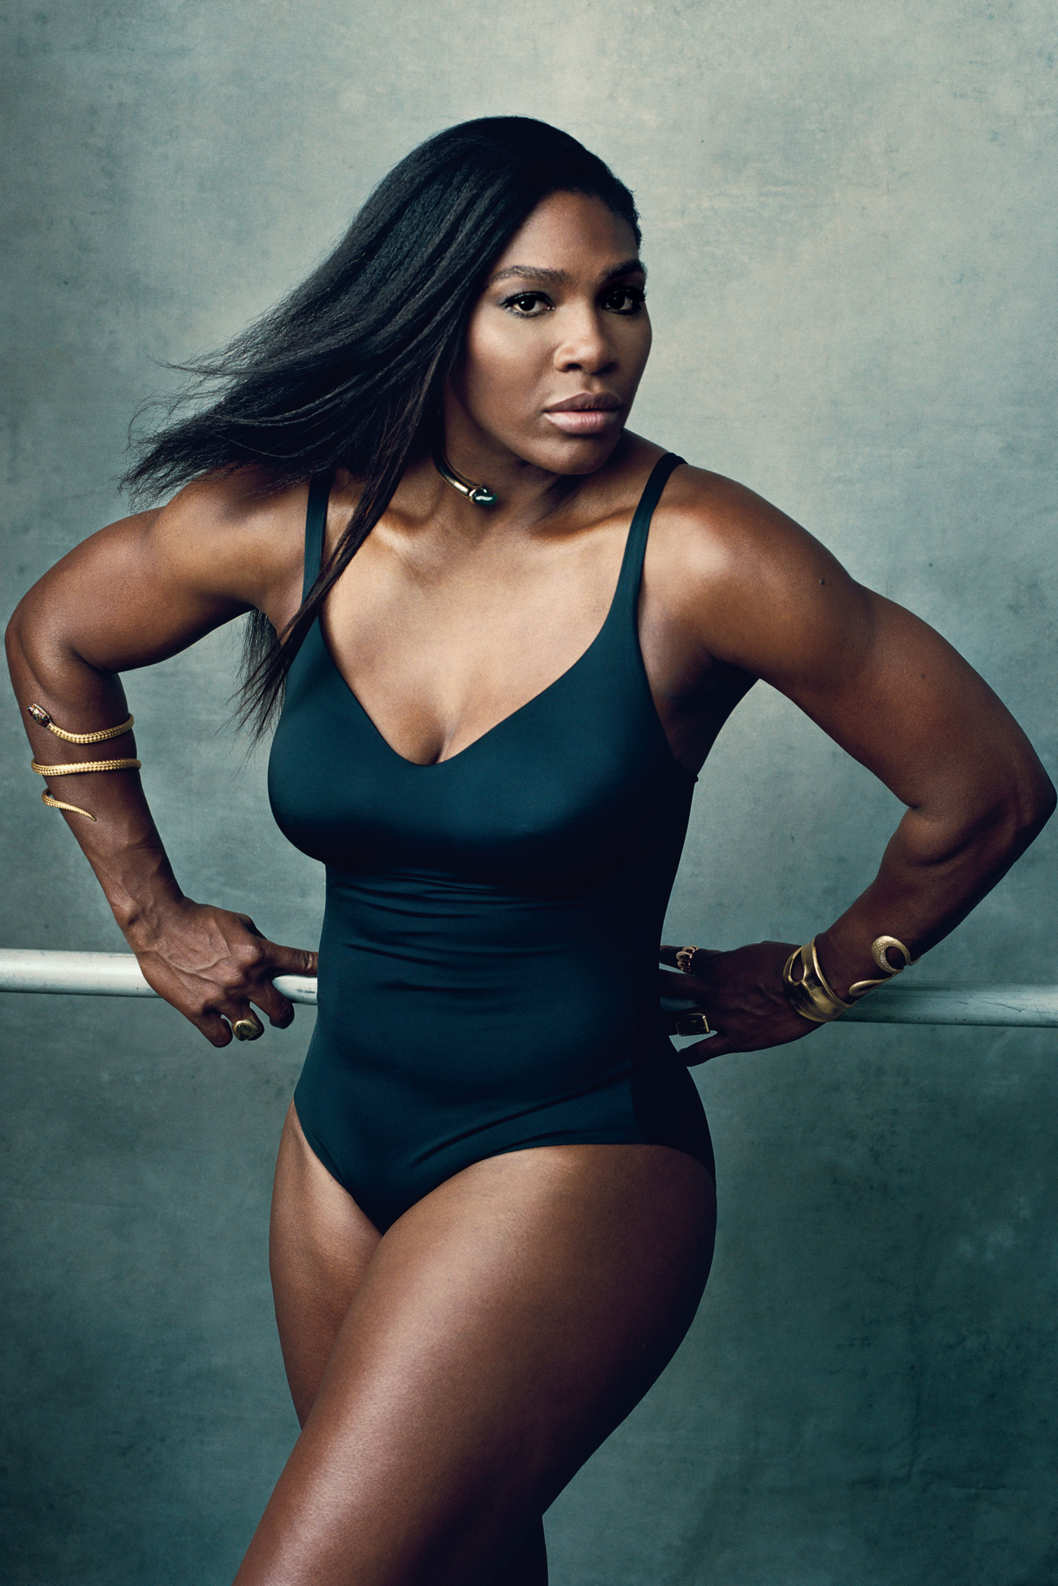 07-serena-williams-4-w529-h793-2x